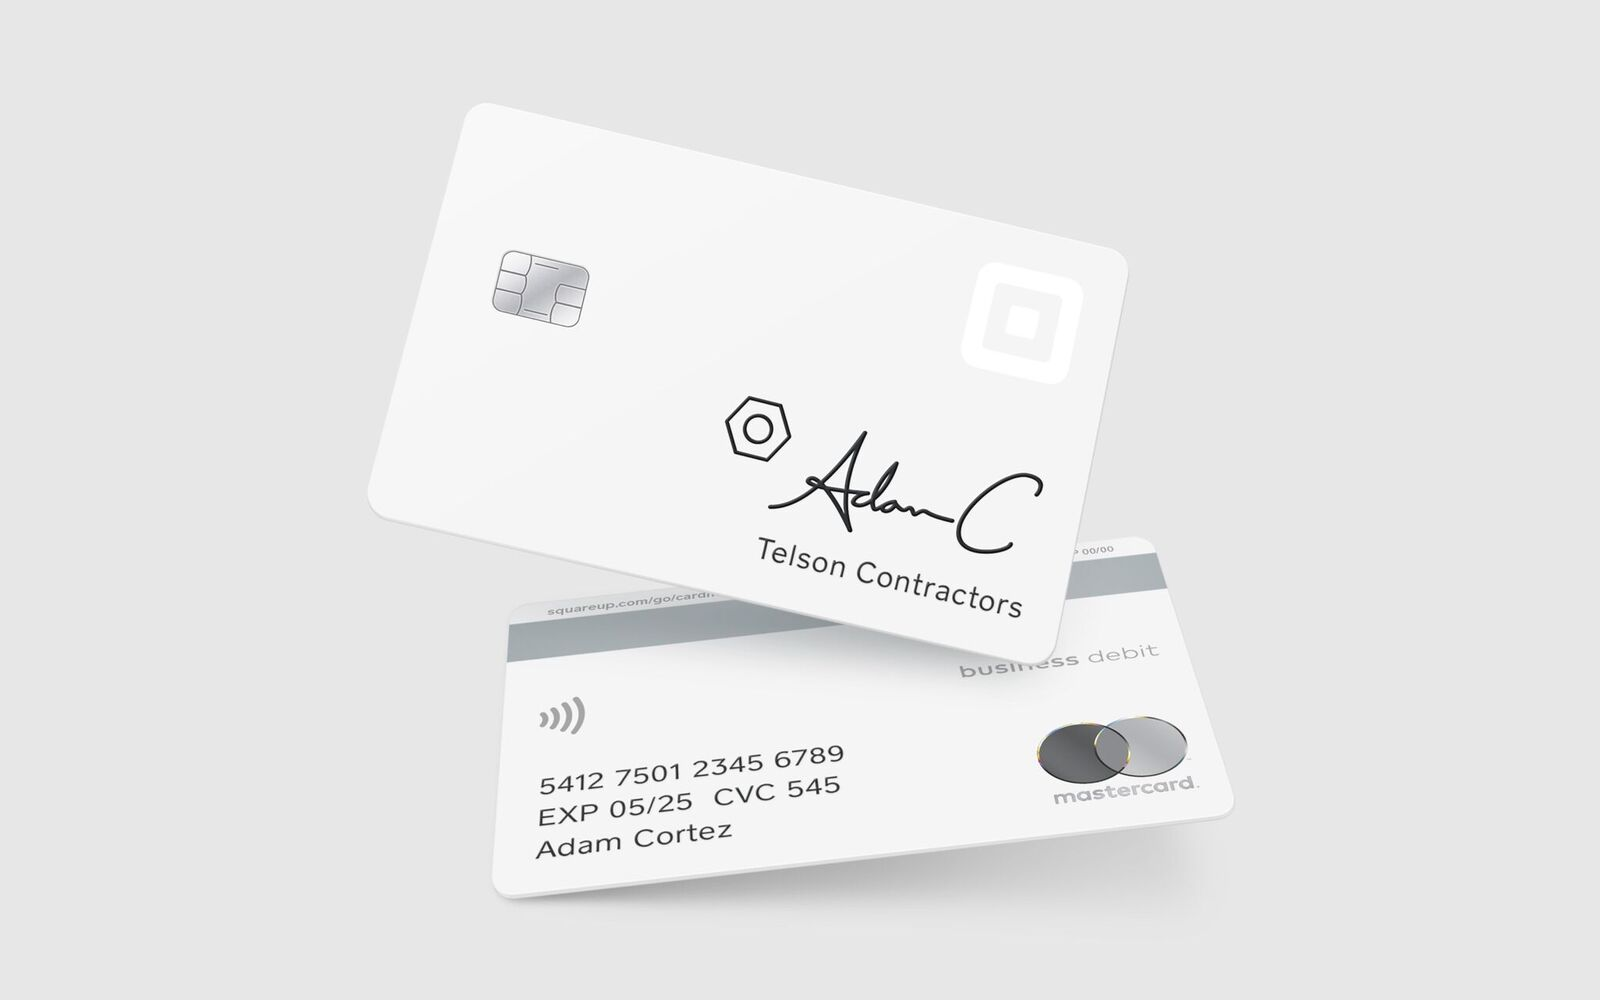 Square Introduces Free Debit Card for Businesses, Giving Sellers